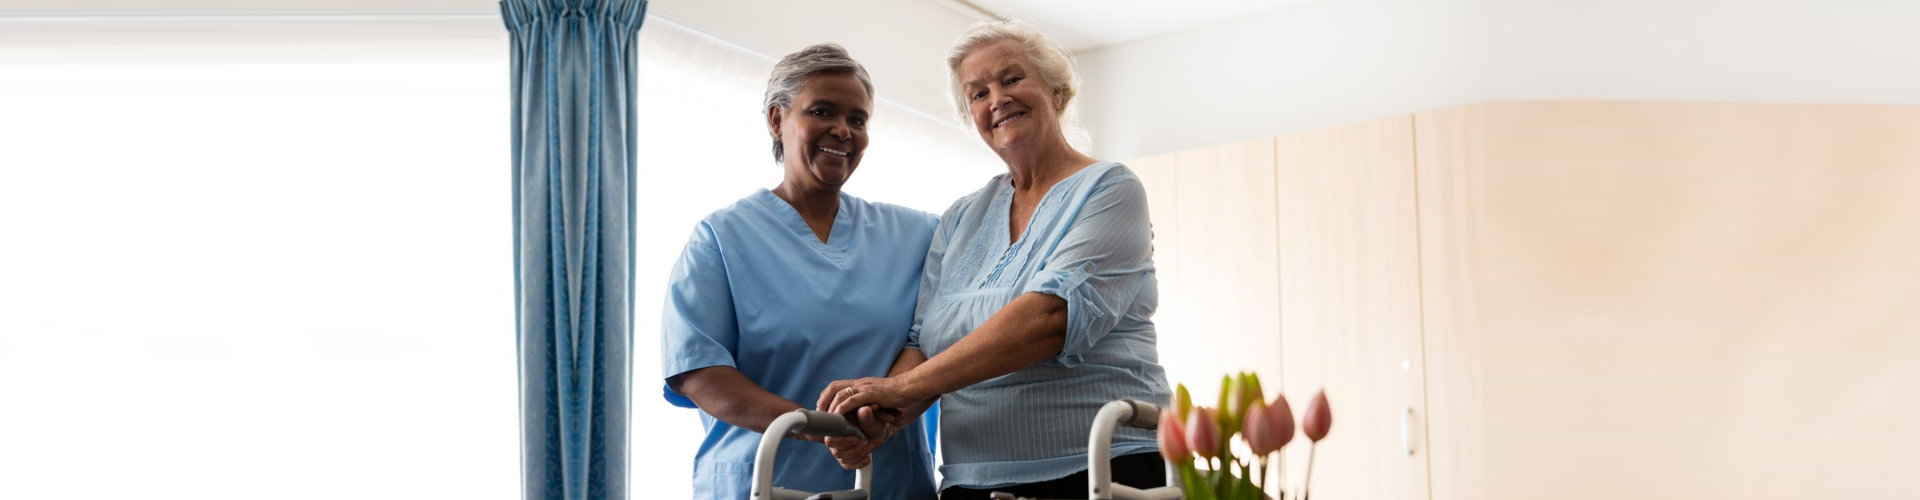 senior woman accompanied by her caregiver